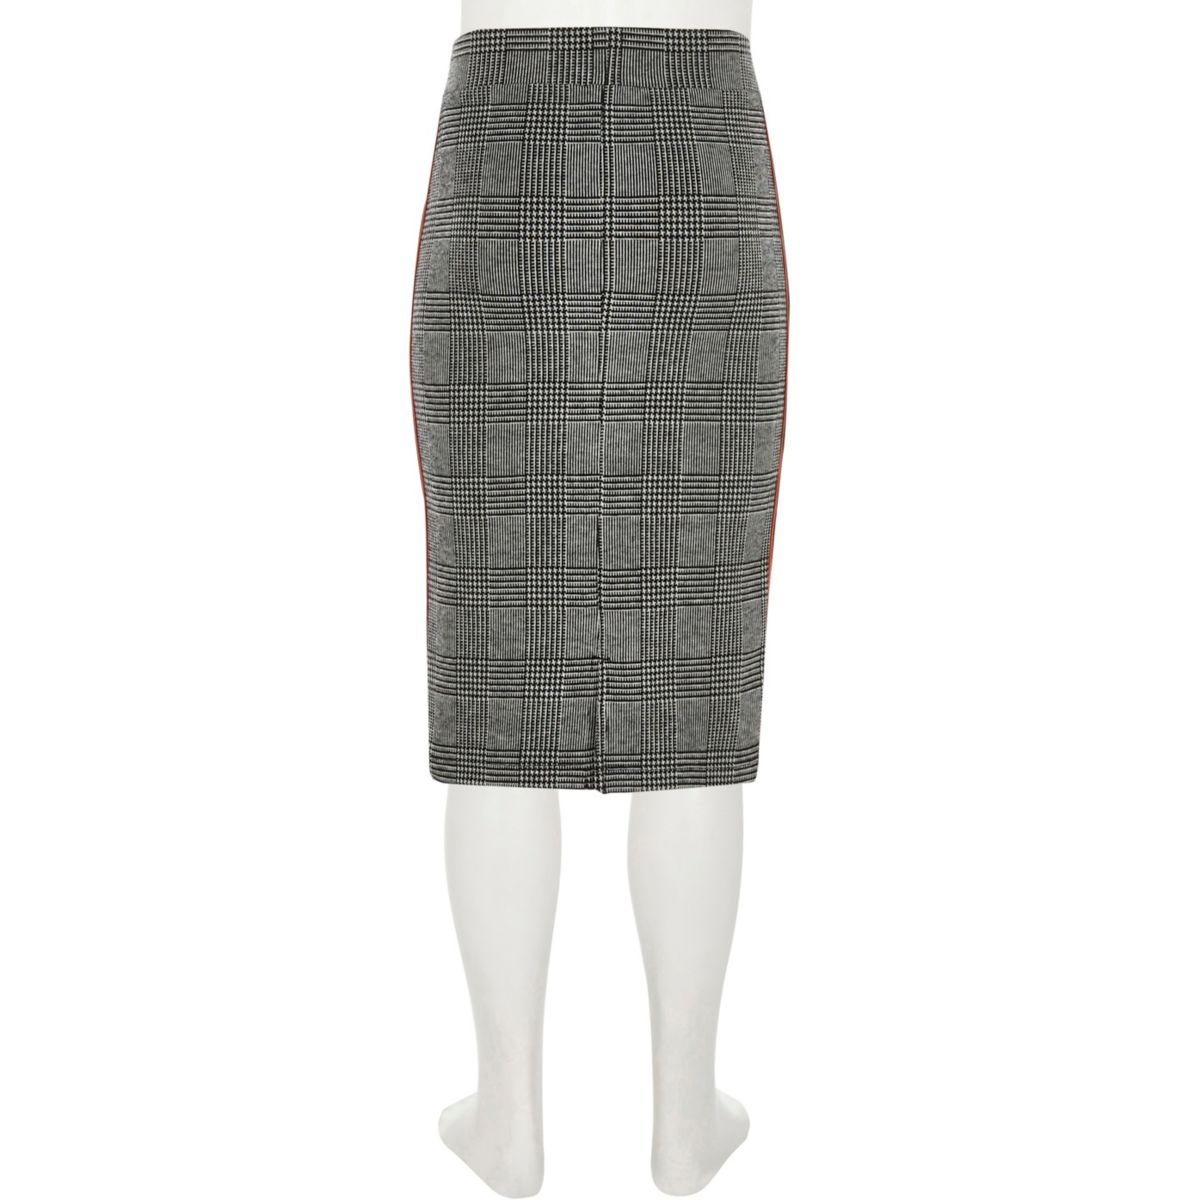 f02253b3e8 Girls grey check side stripe tube skirt - Skirts - Sale - girls